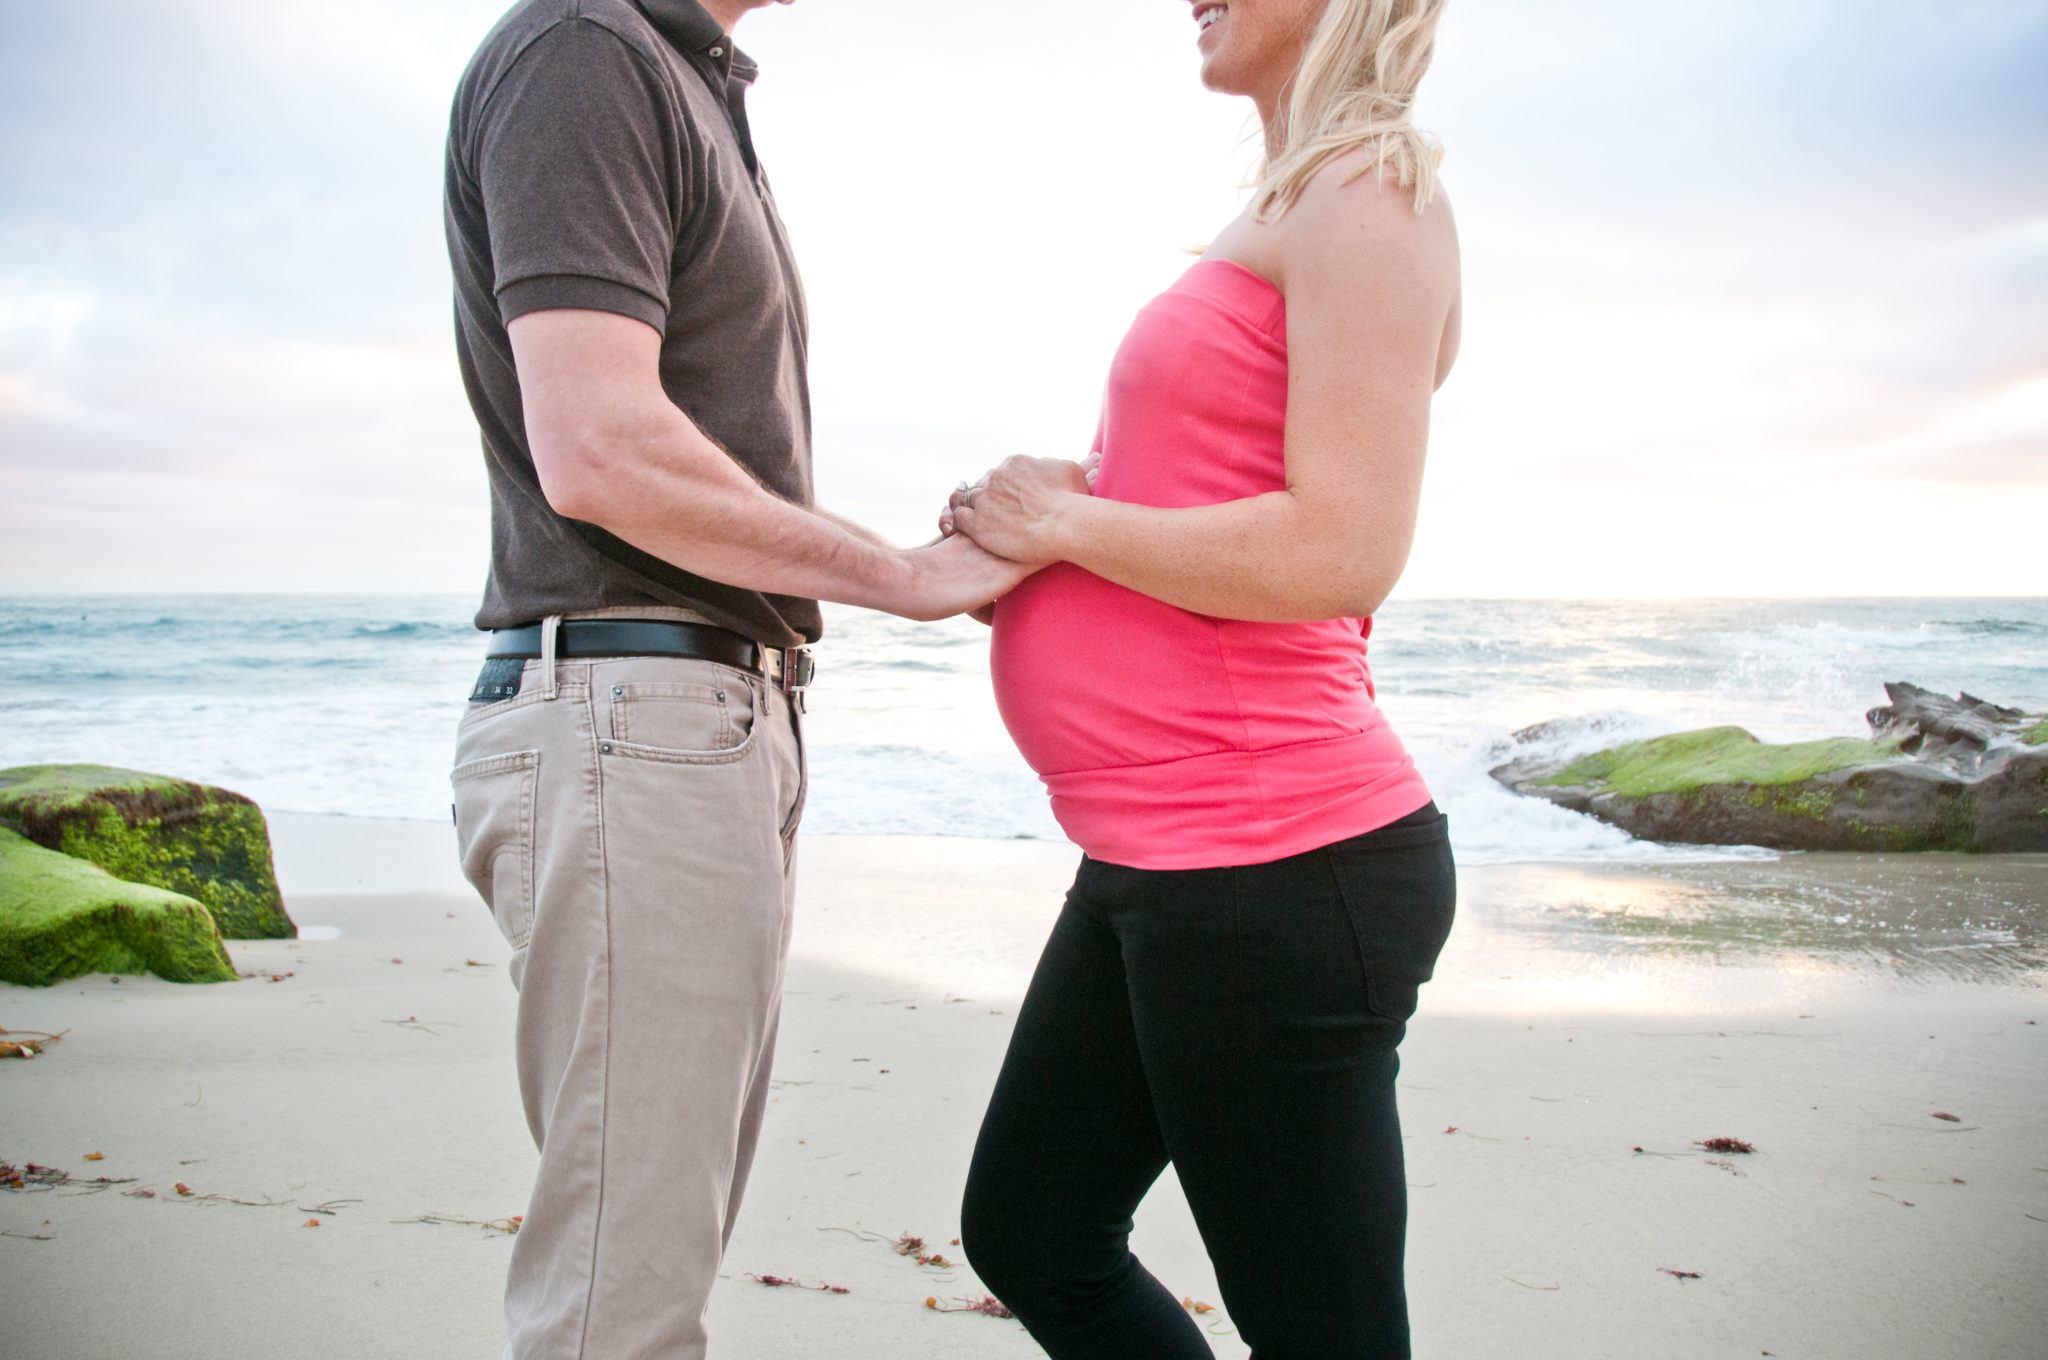 Riley Maternity La Jolla Beach Sunset-6263